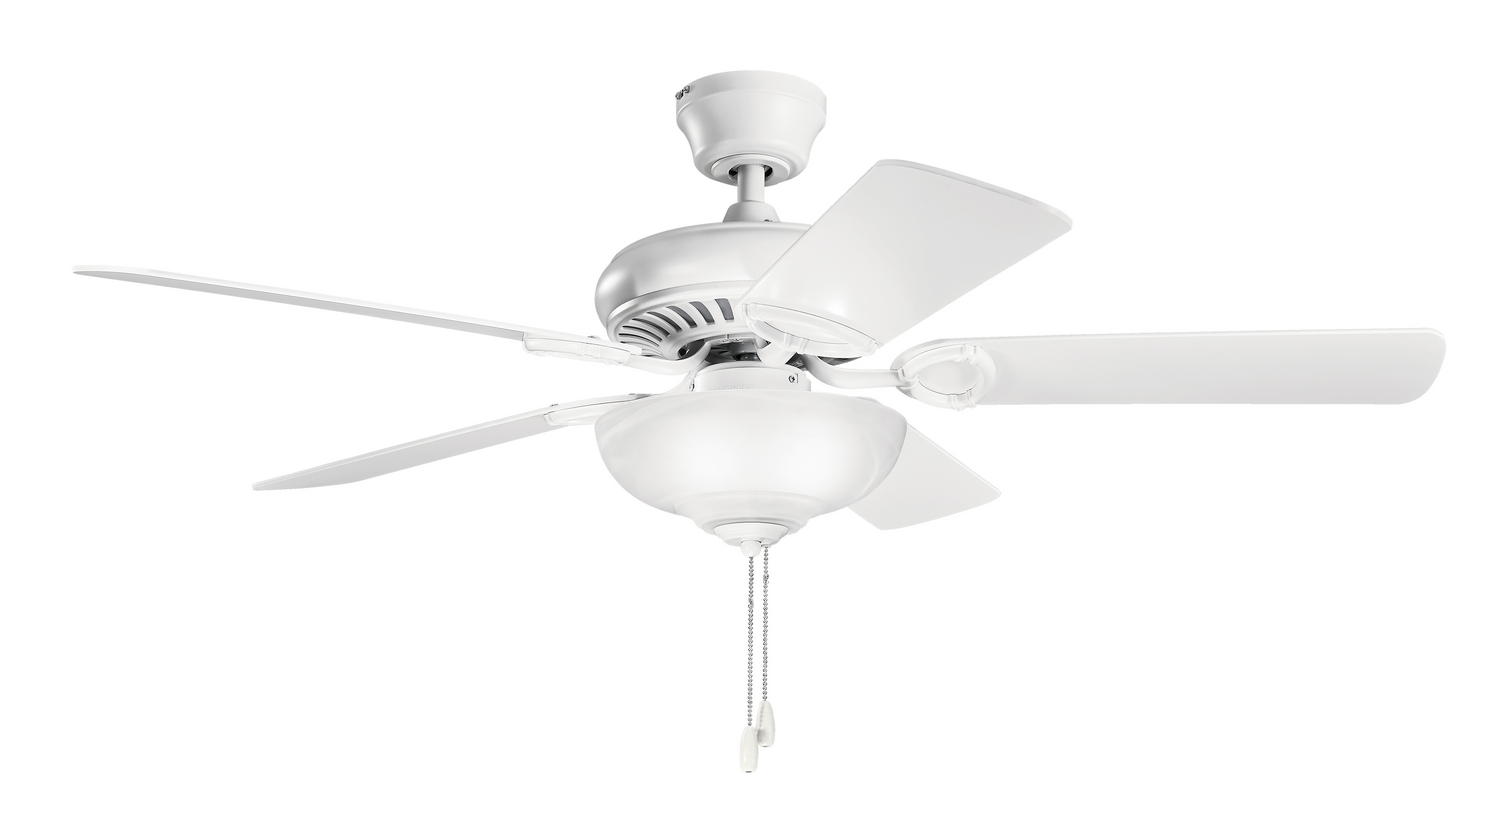 52 inchCeiling Fan from the Sutter Place Select collection by Kichler 339211MWH